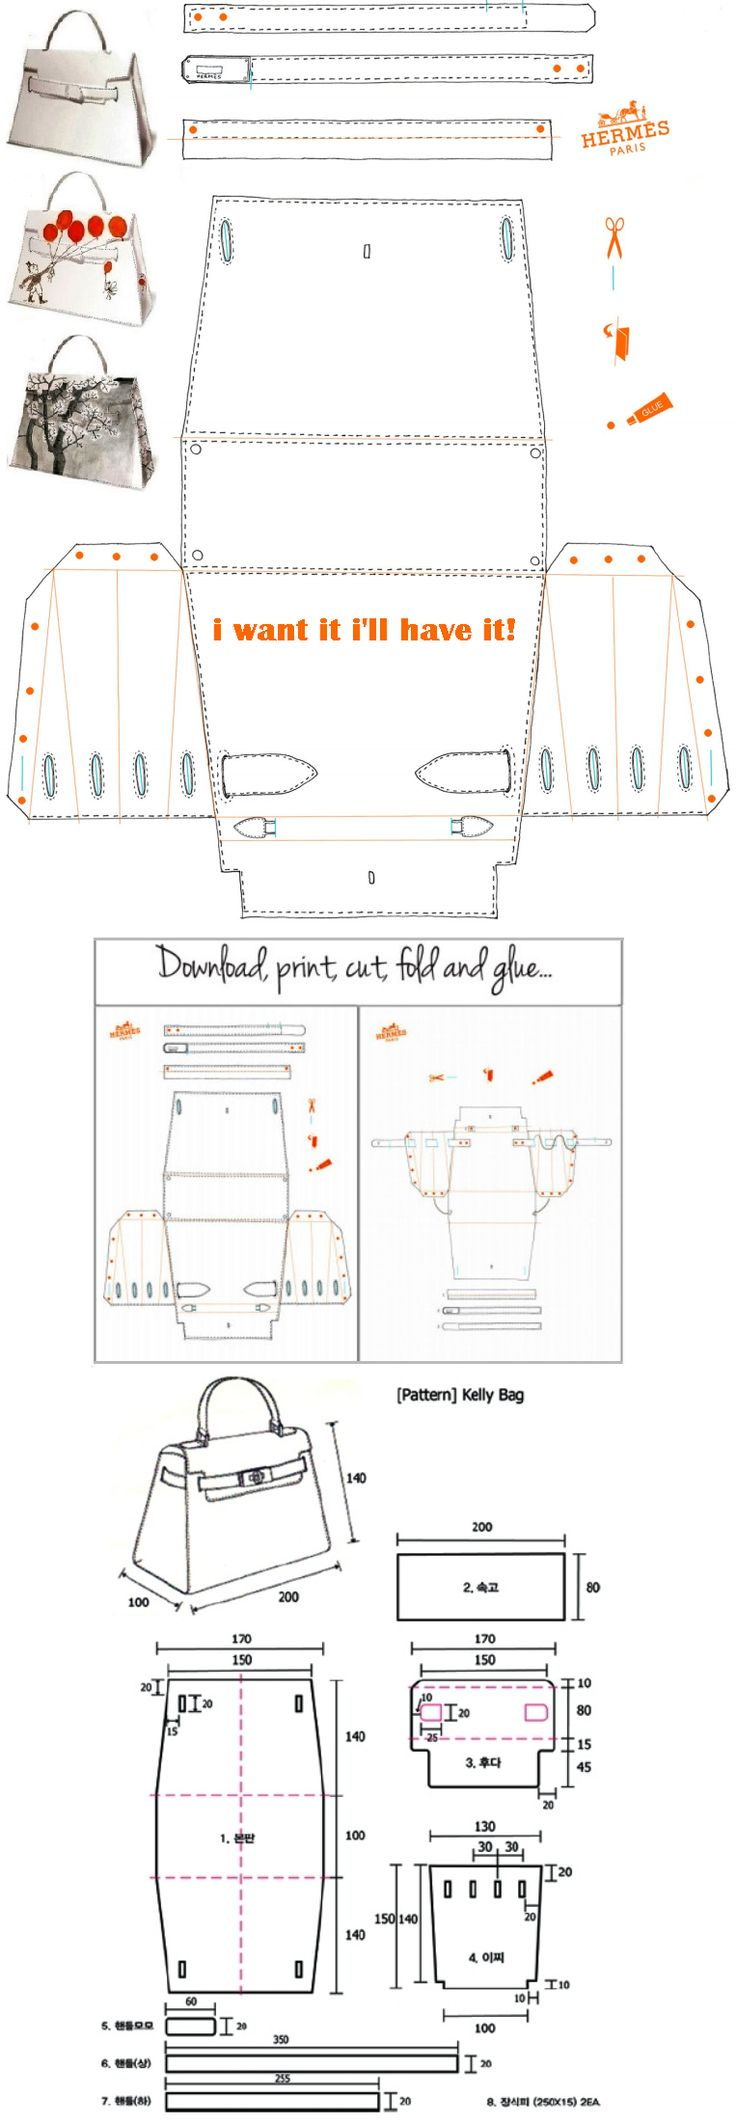 Hermès Kelly Bag Origami Paper Craft - i want it i'll have it! http://yesmissy.files.wordpress.com/2013/01/kelly_papier-plain.pdf                                                                                                                                                     Plus